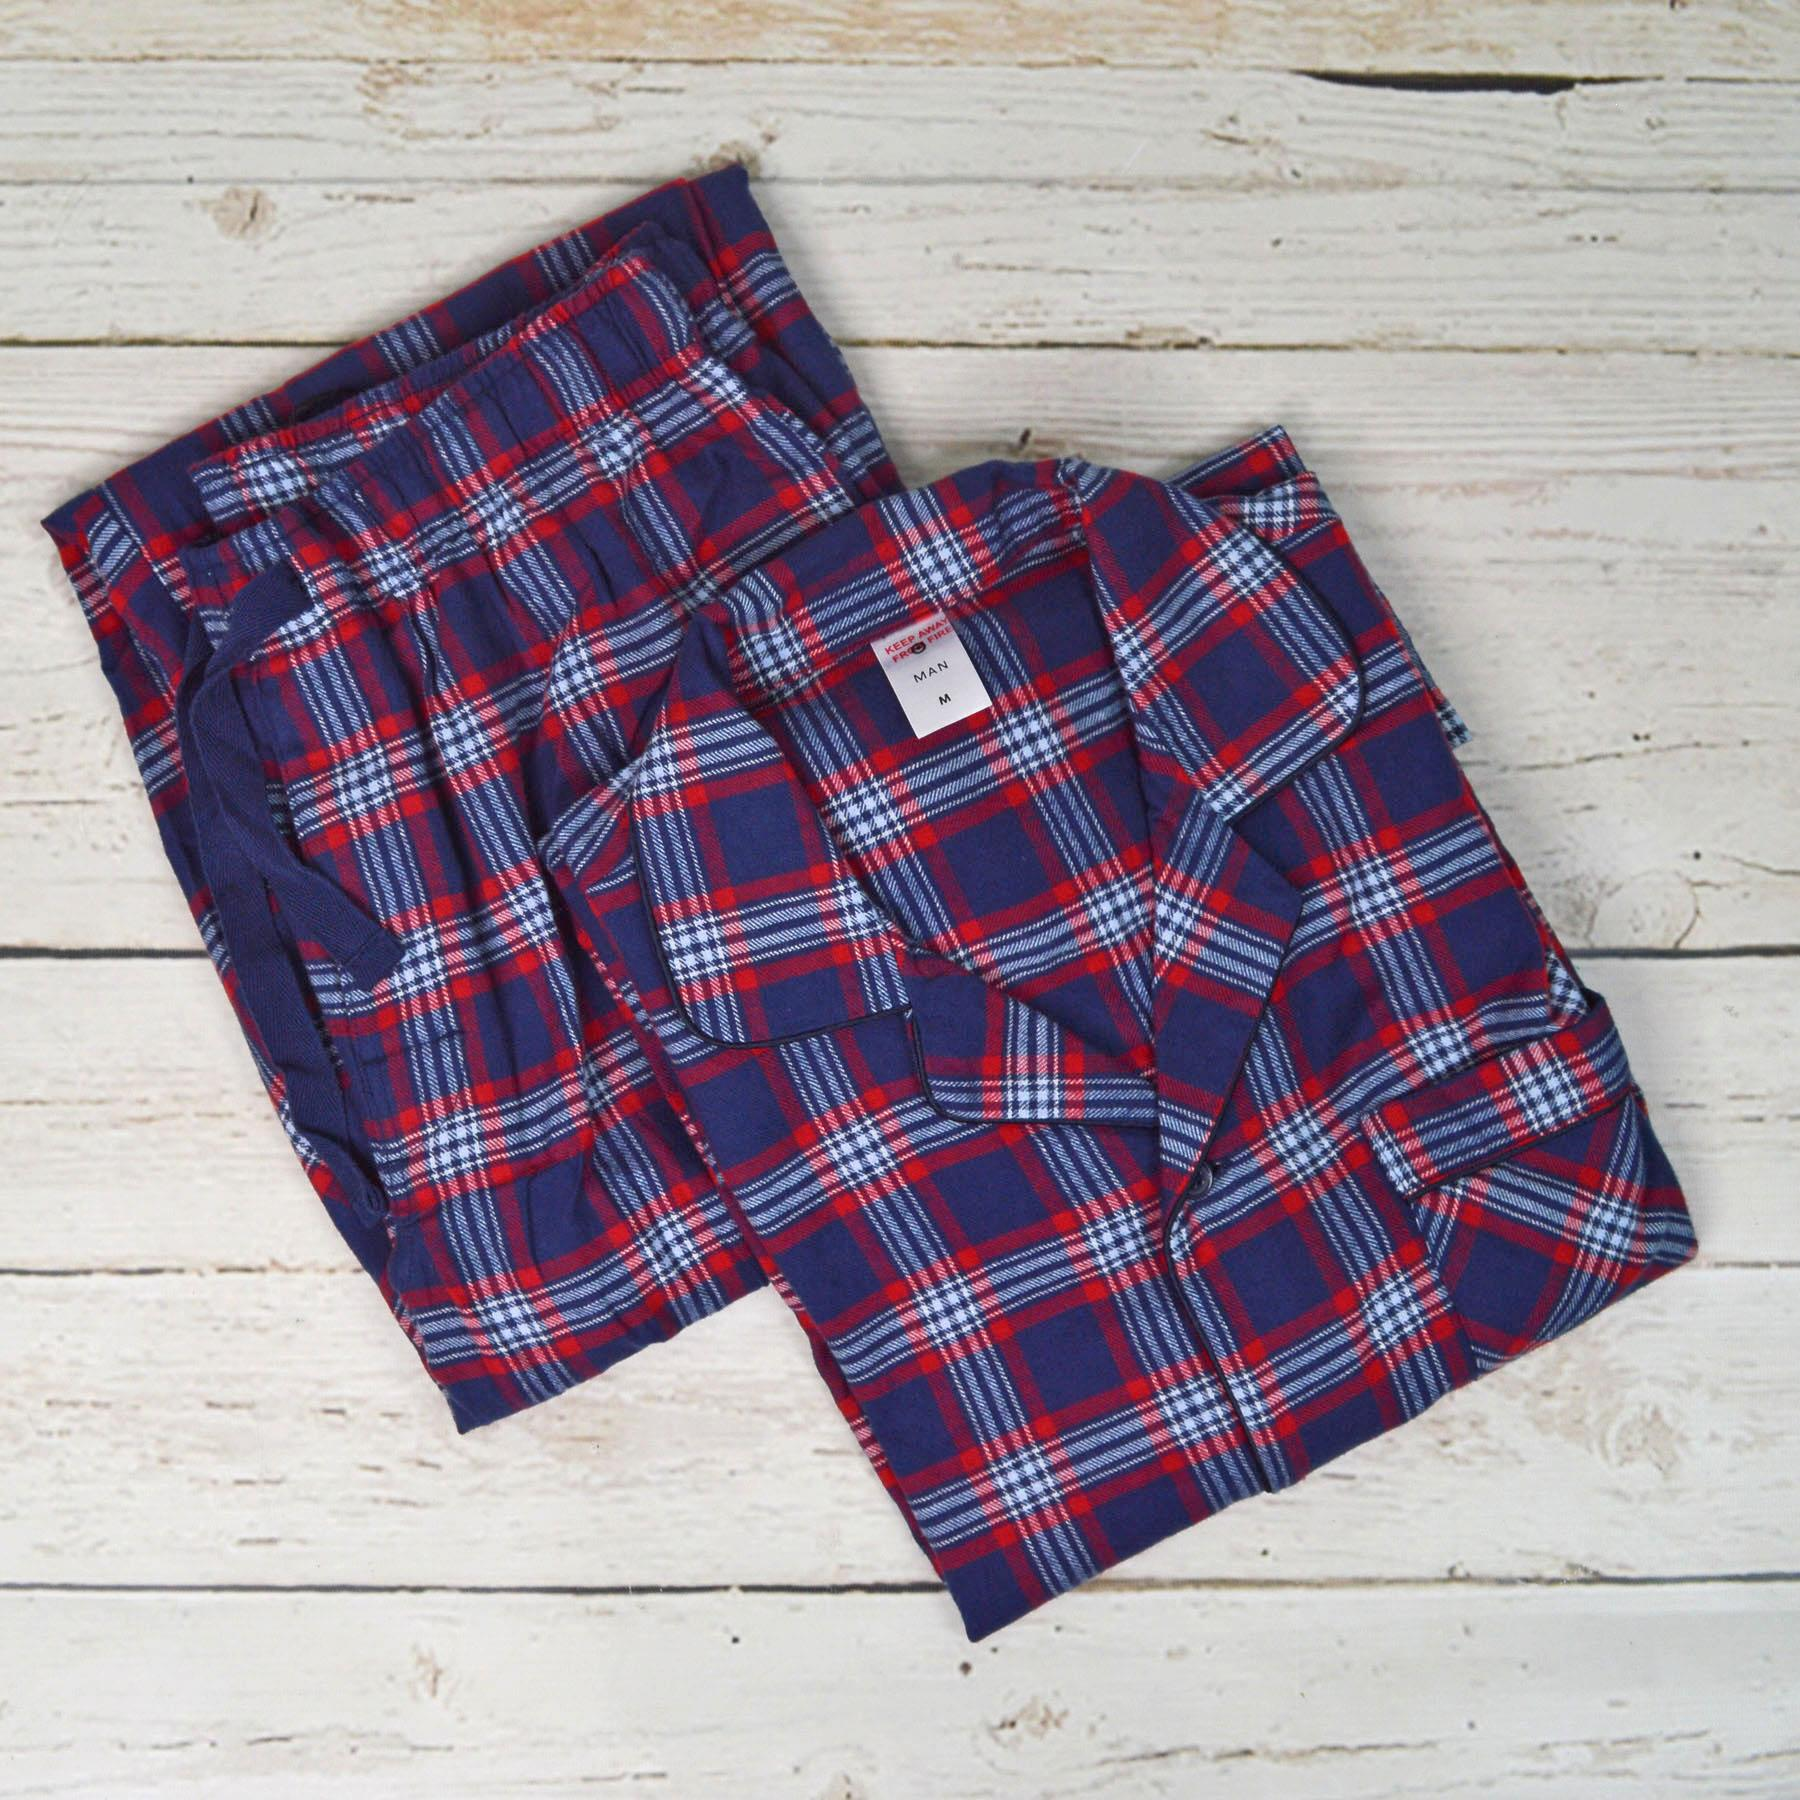 NEW-Mens-Brushed-Pure-Cotton-Check-Pyjamas-Flannelette-PJ-Set-in-Blue-Red-Grey thumbnail 16